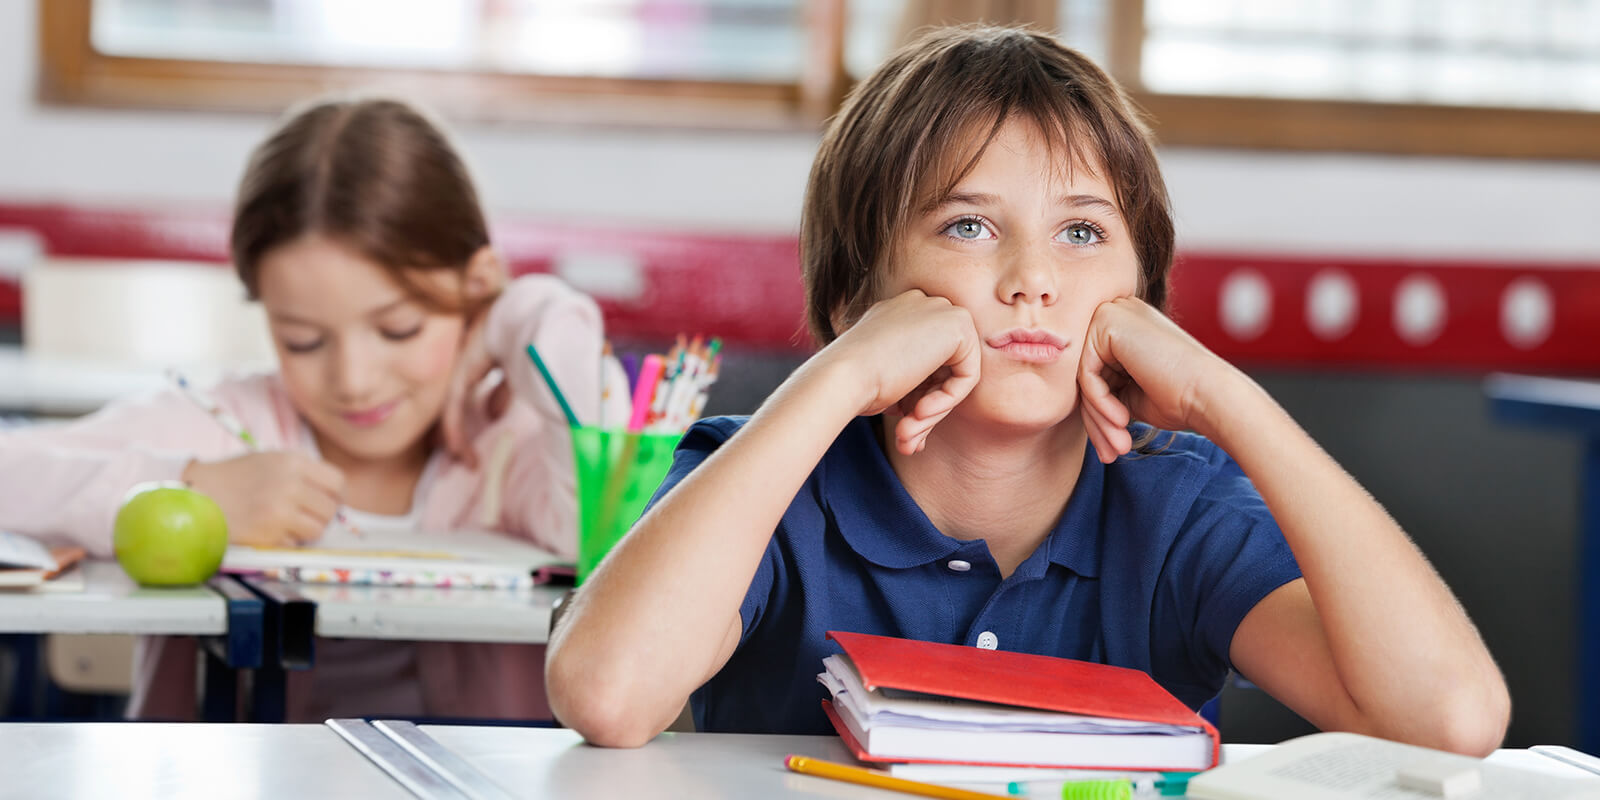 Stock image: Bored schoolboy looking away while sitting at desk with girl in background at classroom | By: Tyler Olson